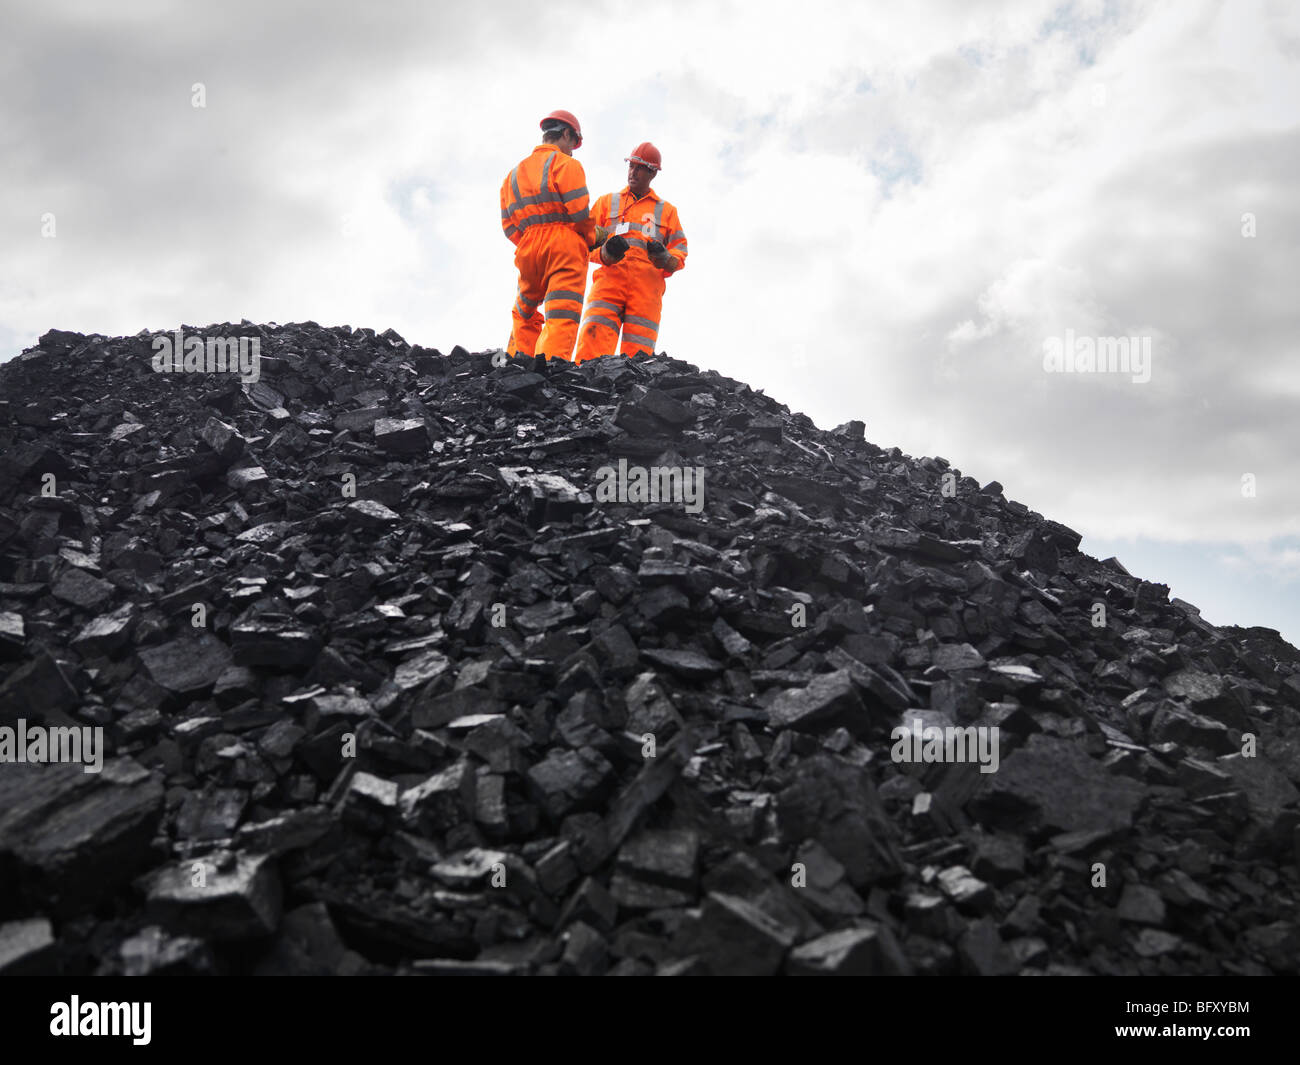 Coal Miners On Pile Of Coal - Stock Image